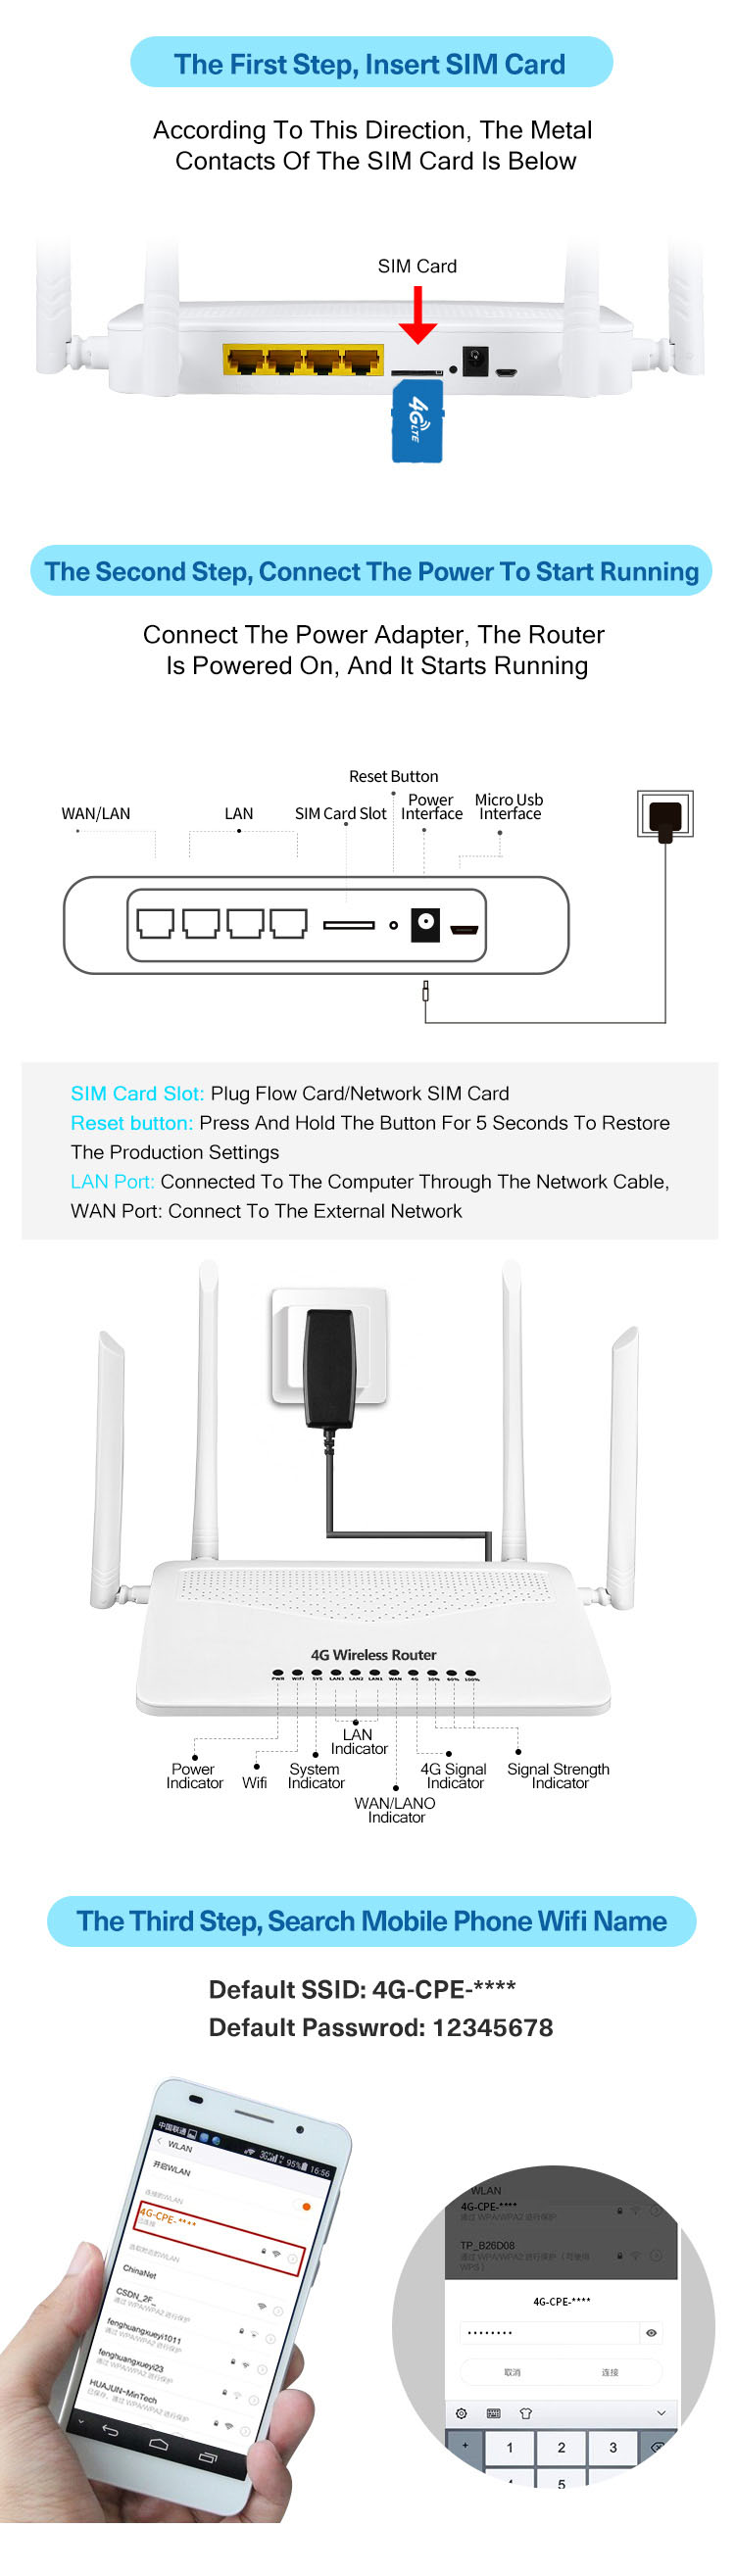 2.4Ghz 300Mbps 192.168.0.1 wi-fi router 4g modem lte router wifi with sim card slot